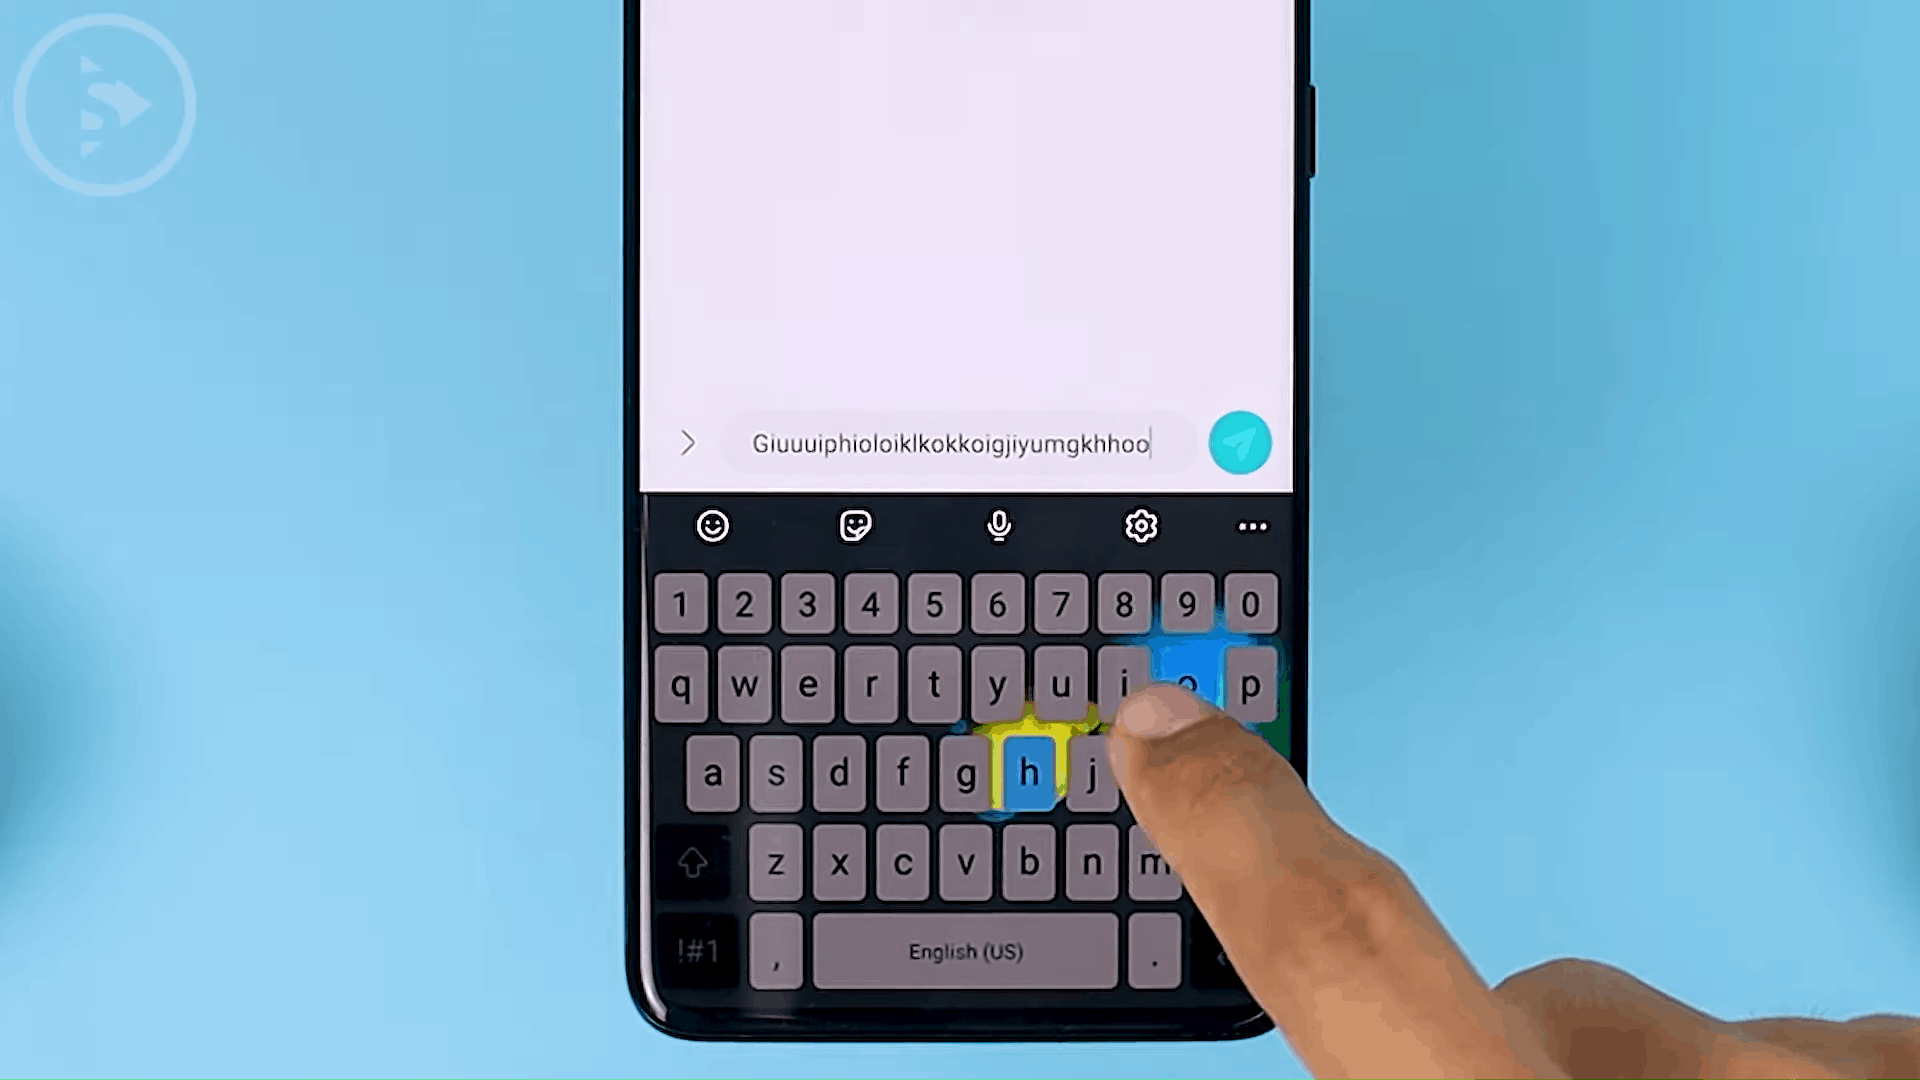 Keyboard Features - The Latest One Hand Operation+ Feature in Update 2021 - A MANDATORY Application For Full Screen Gesture Users